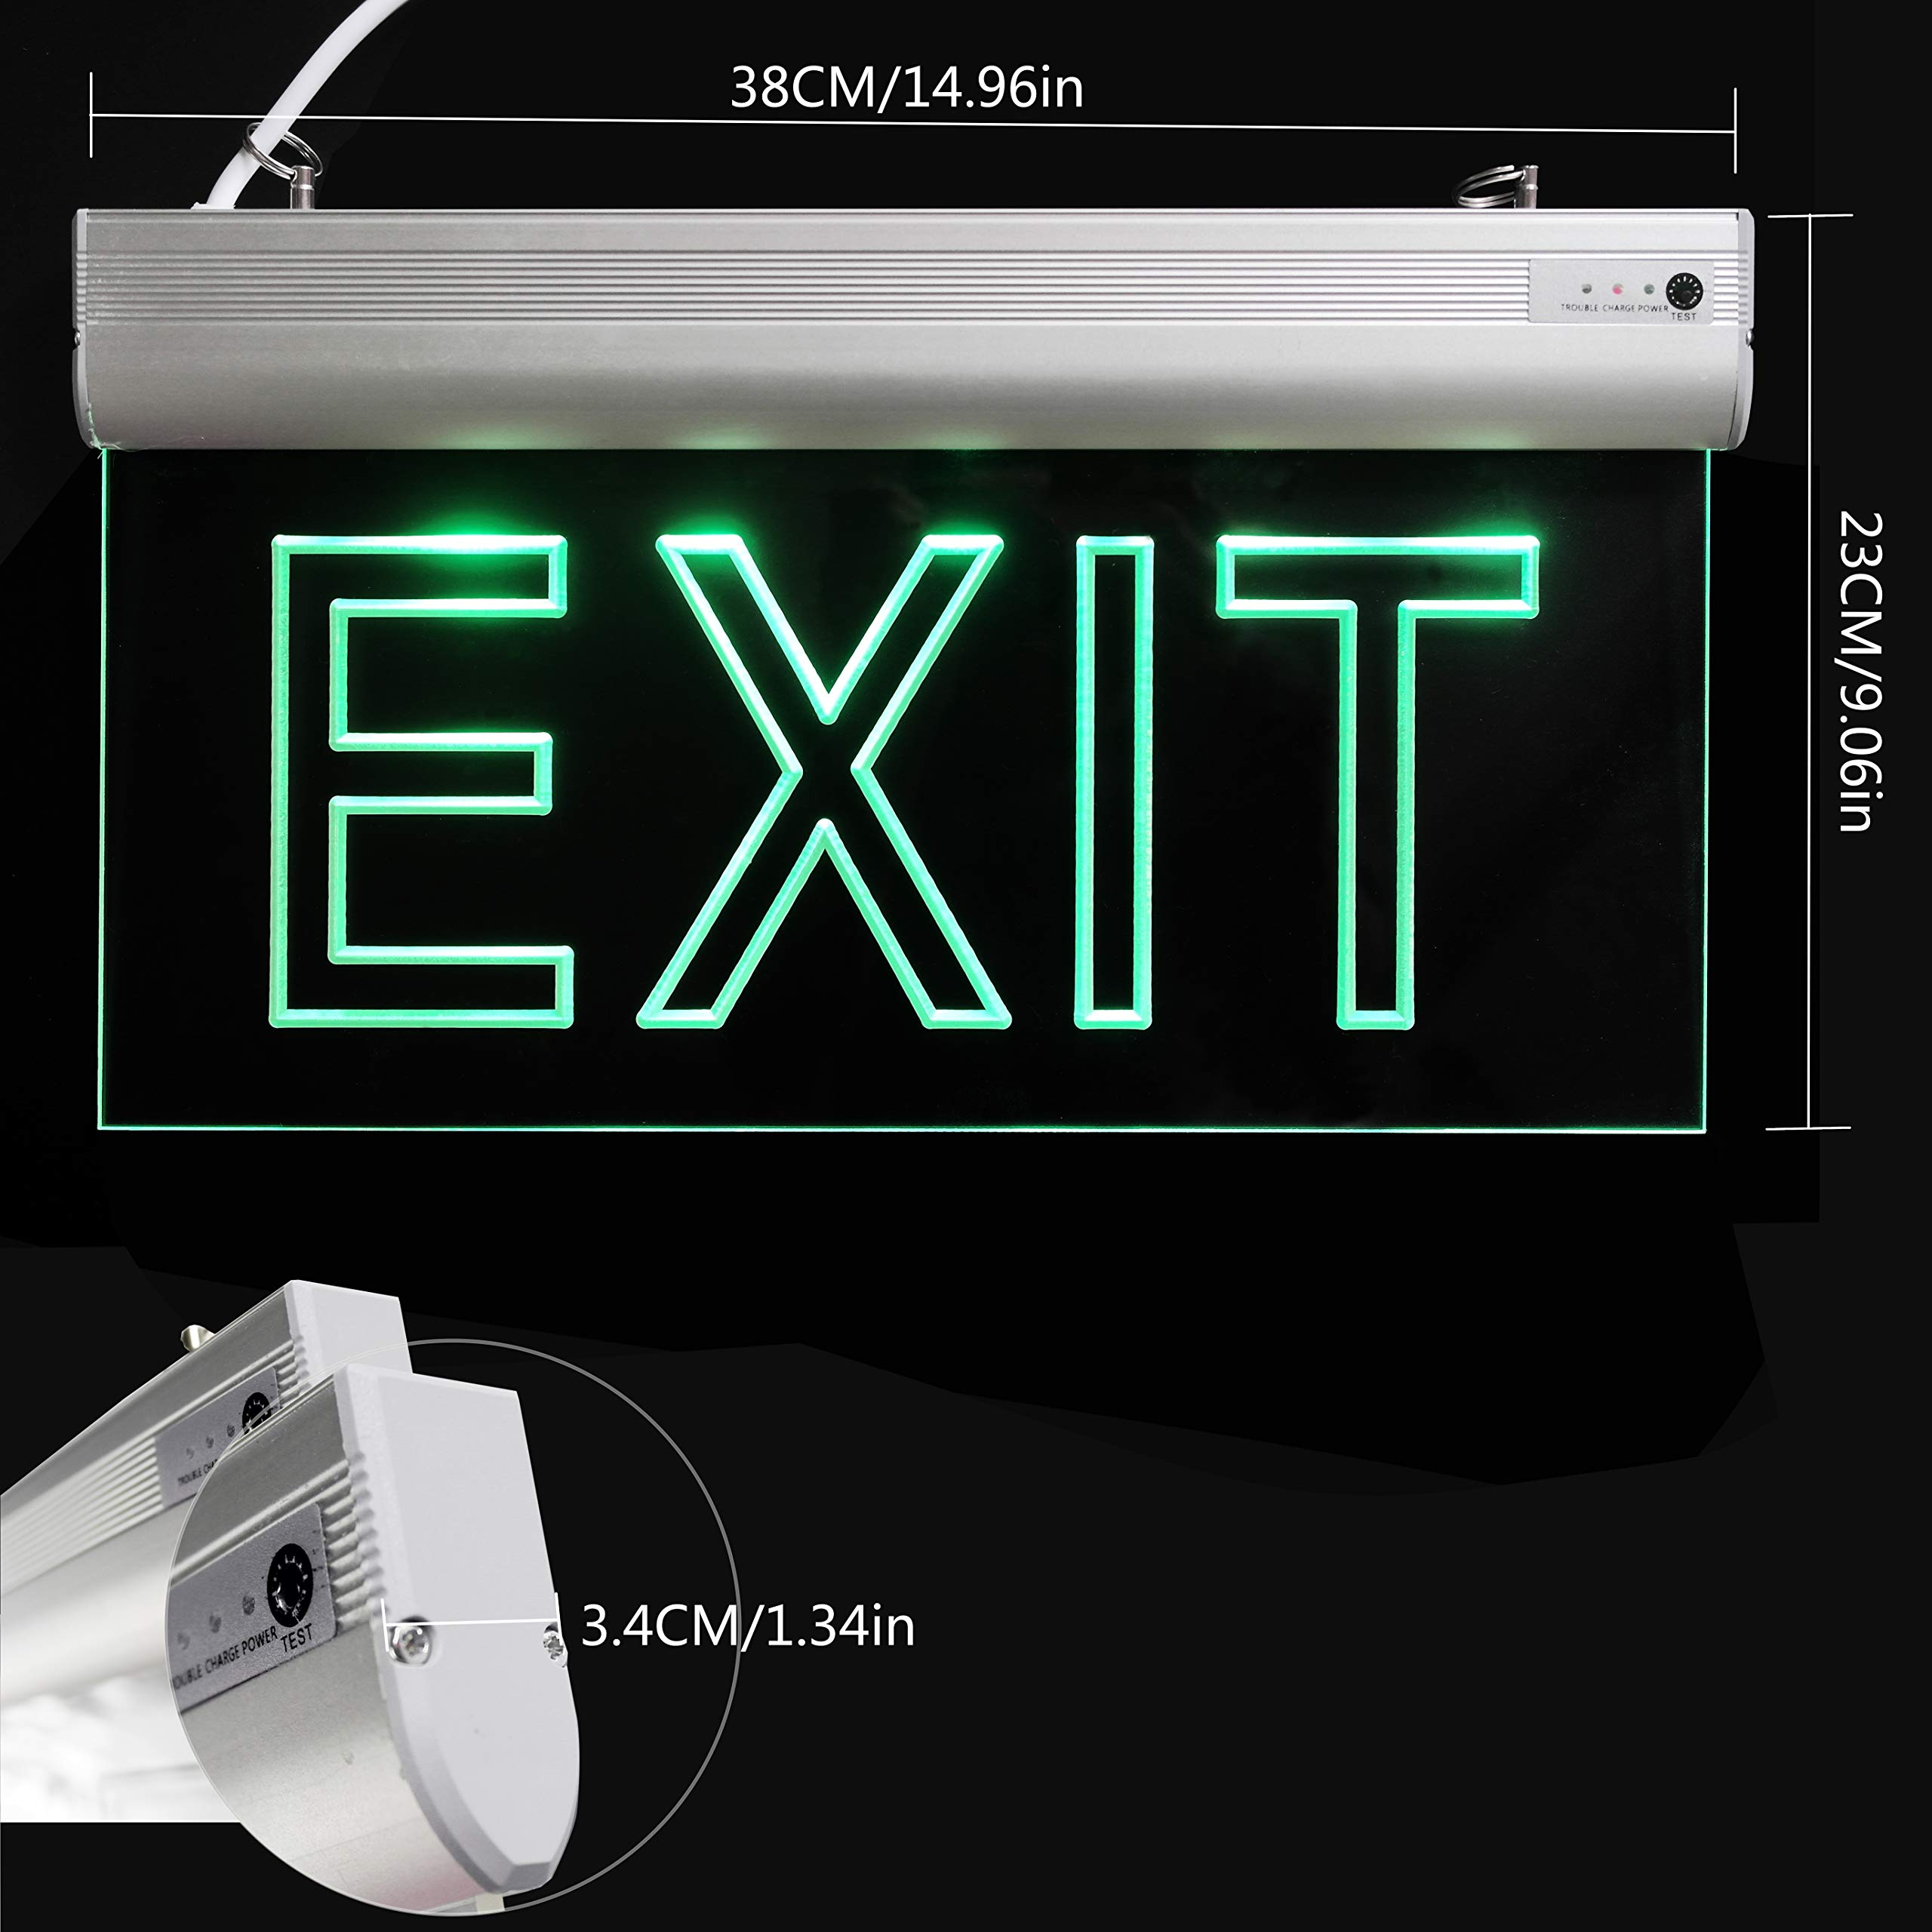 LFI Lights - 2 Pack - Certified - Hardwired Red LED Edge Light Exit Sign - Rotating Panel Battery Backup,Clear Panel(Green) by ryumei (Image #3)